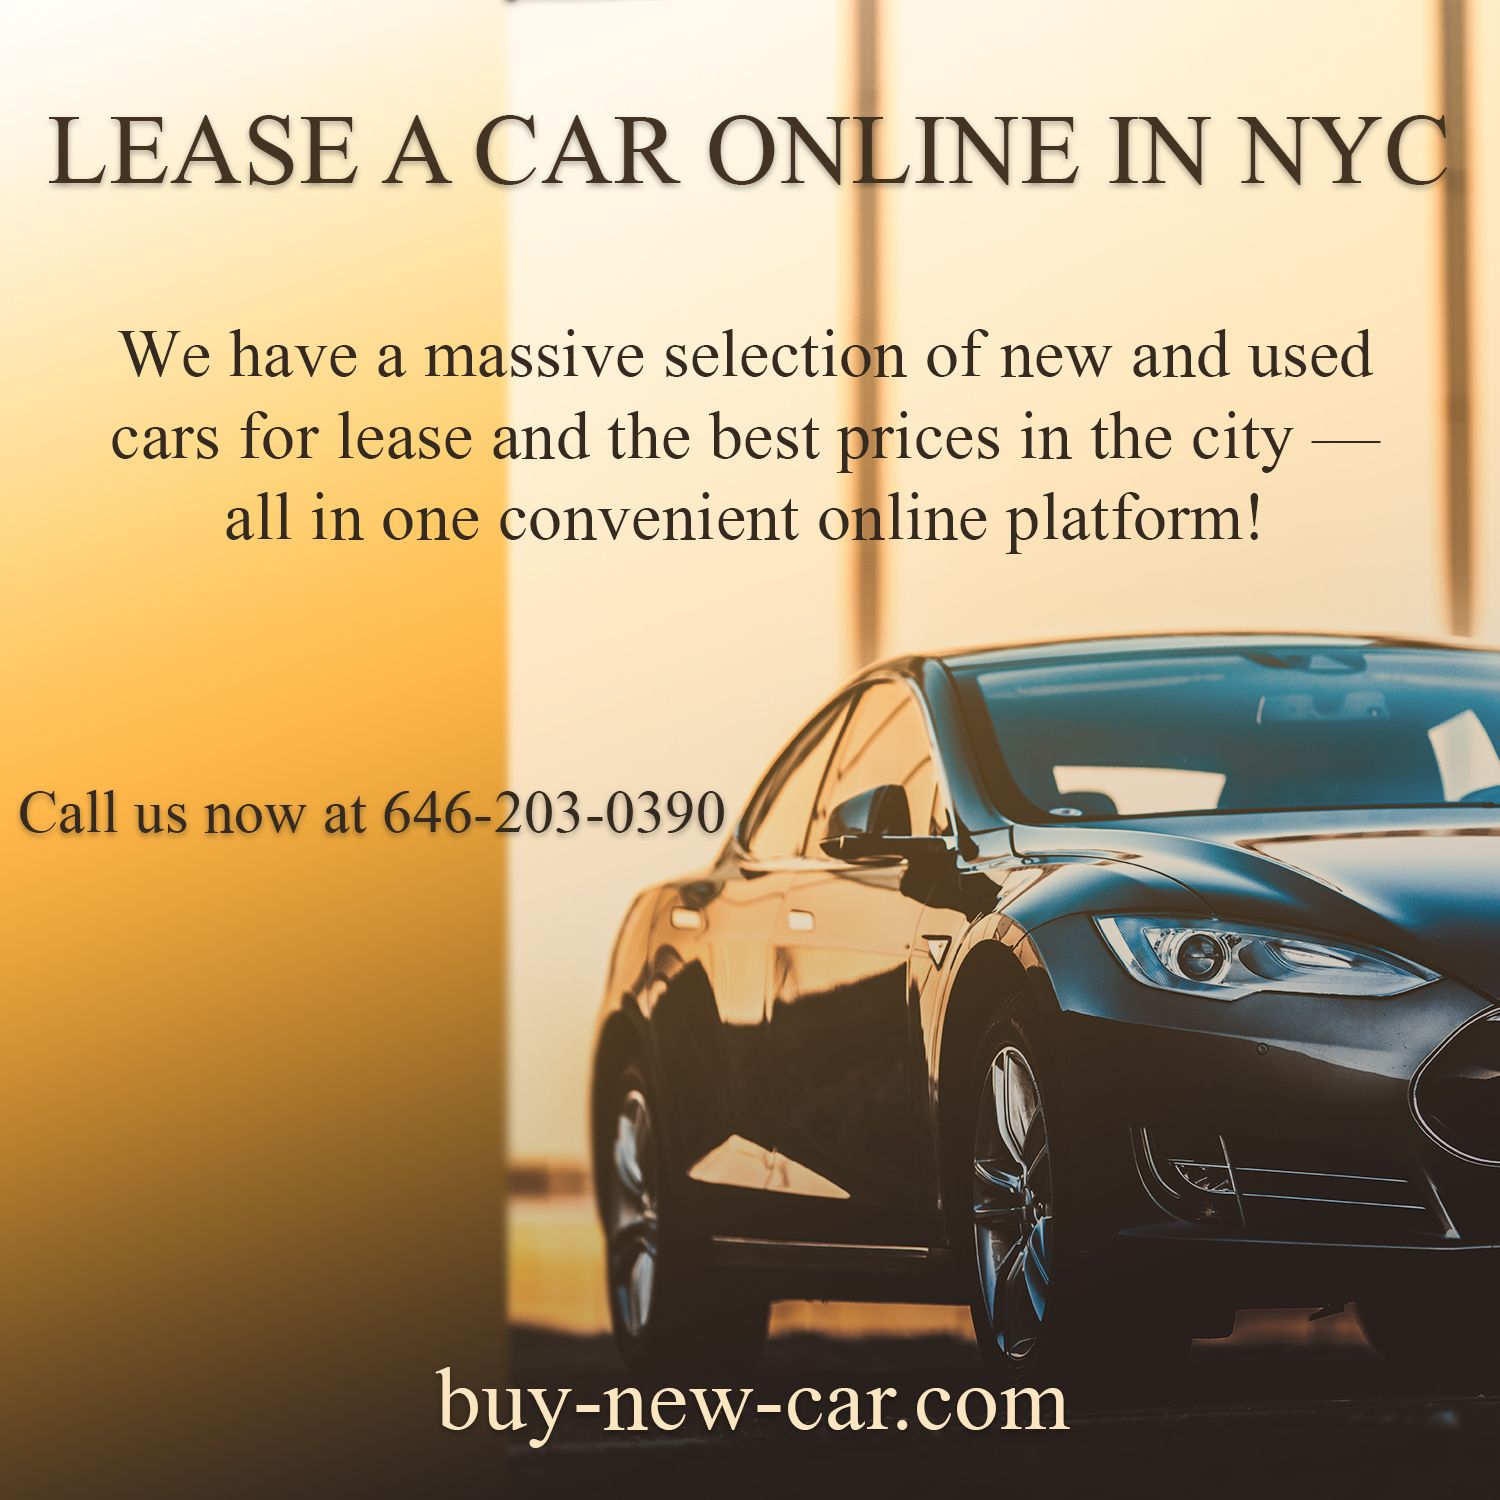 Buy New Car 536 W 163rd St New York Ny 10032 1 646 203 0390 Buying New Car Car Lease Specials